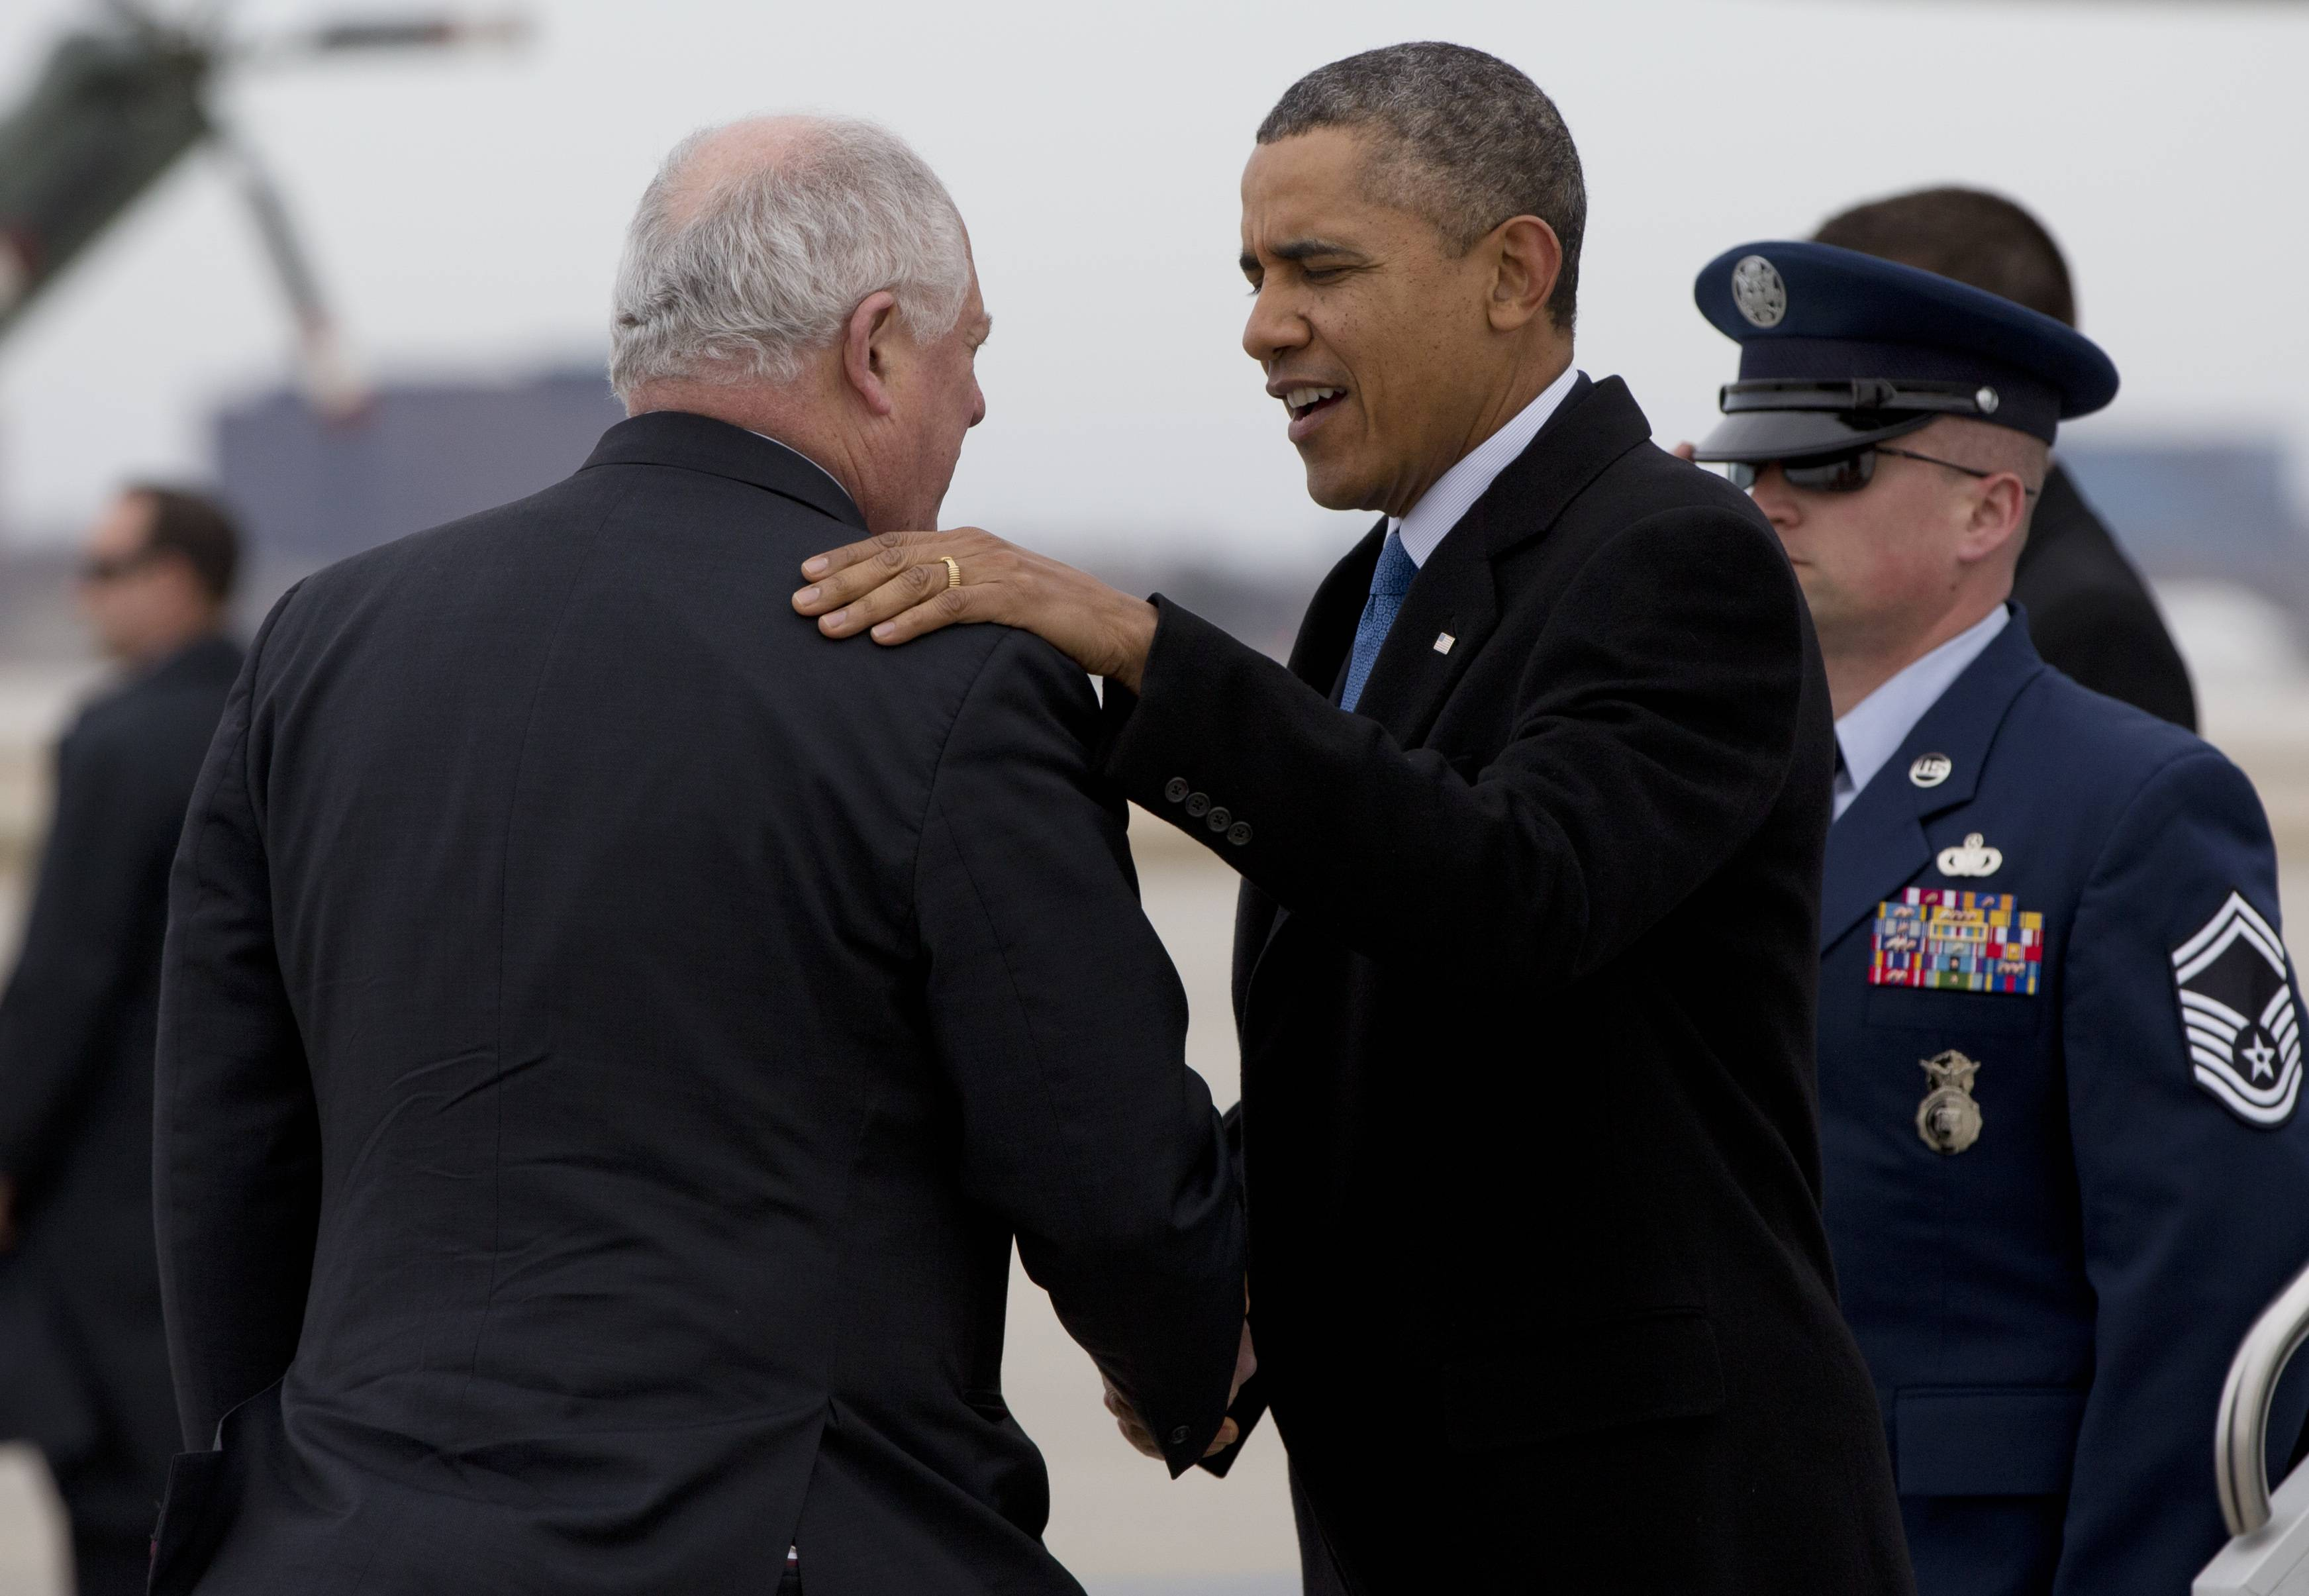 President Barack Obama is greeted by Illinois Gov. Pat Quinn as he arrives at Chicago O'Hare International Airport on Air Force One Wednesday, on his way to attend Democratic National Committee events in Chicago.